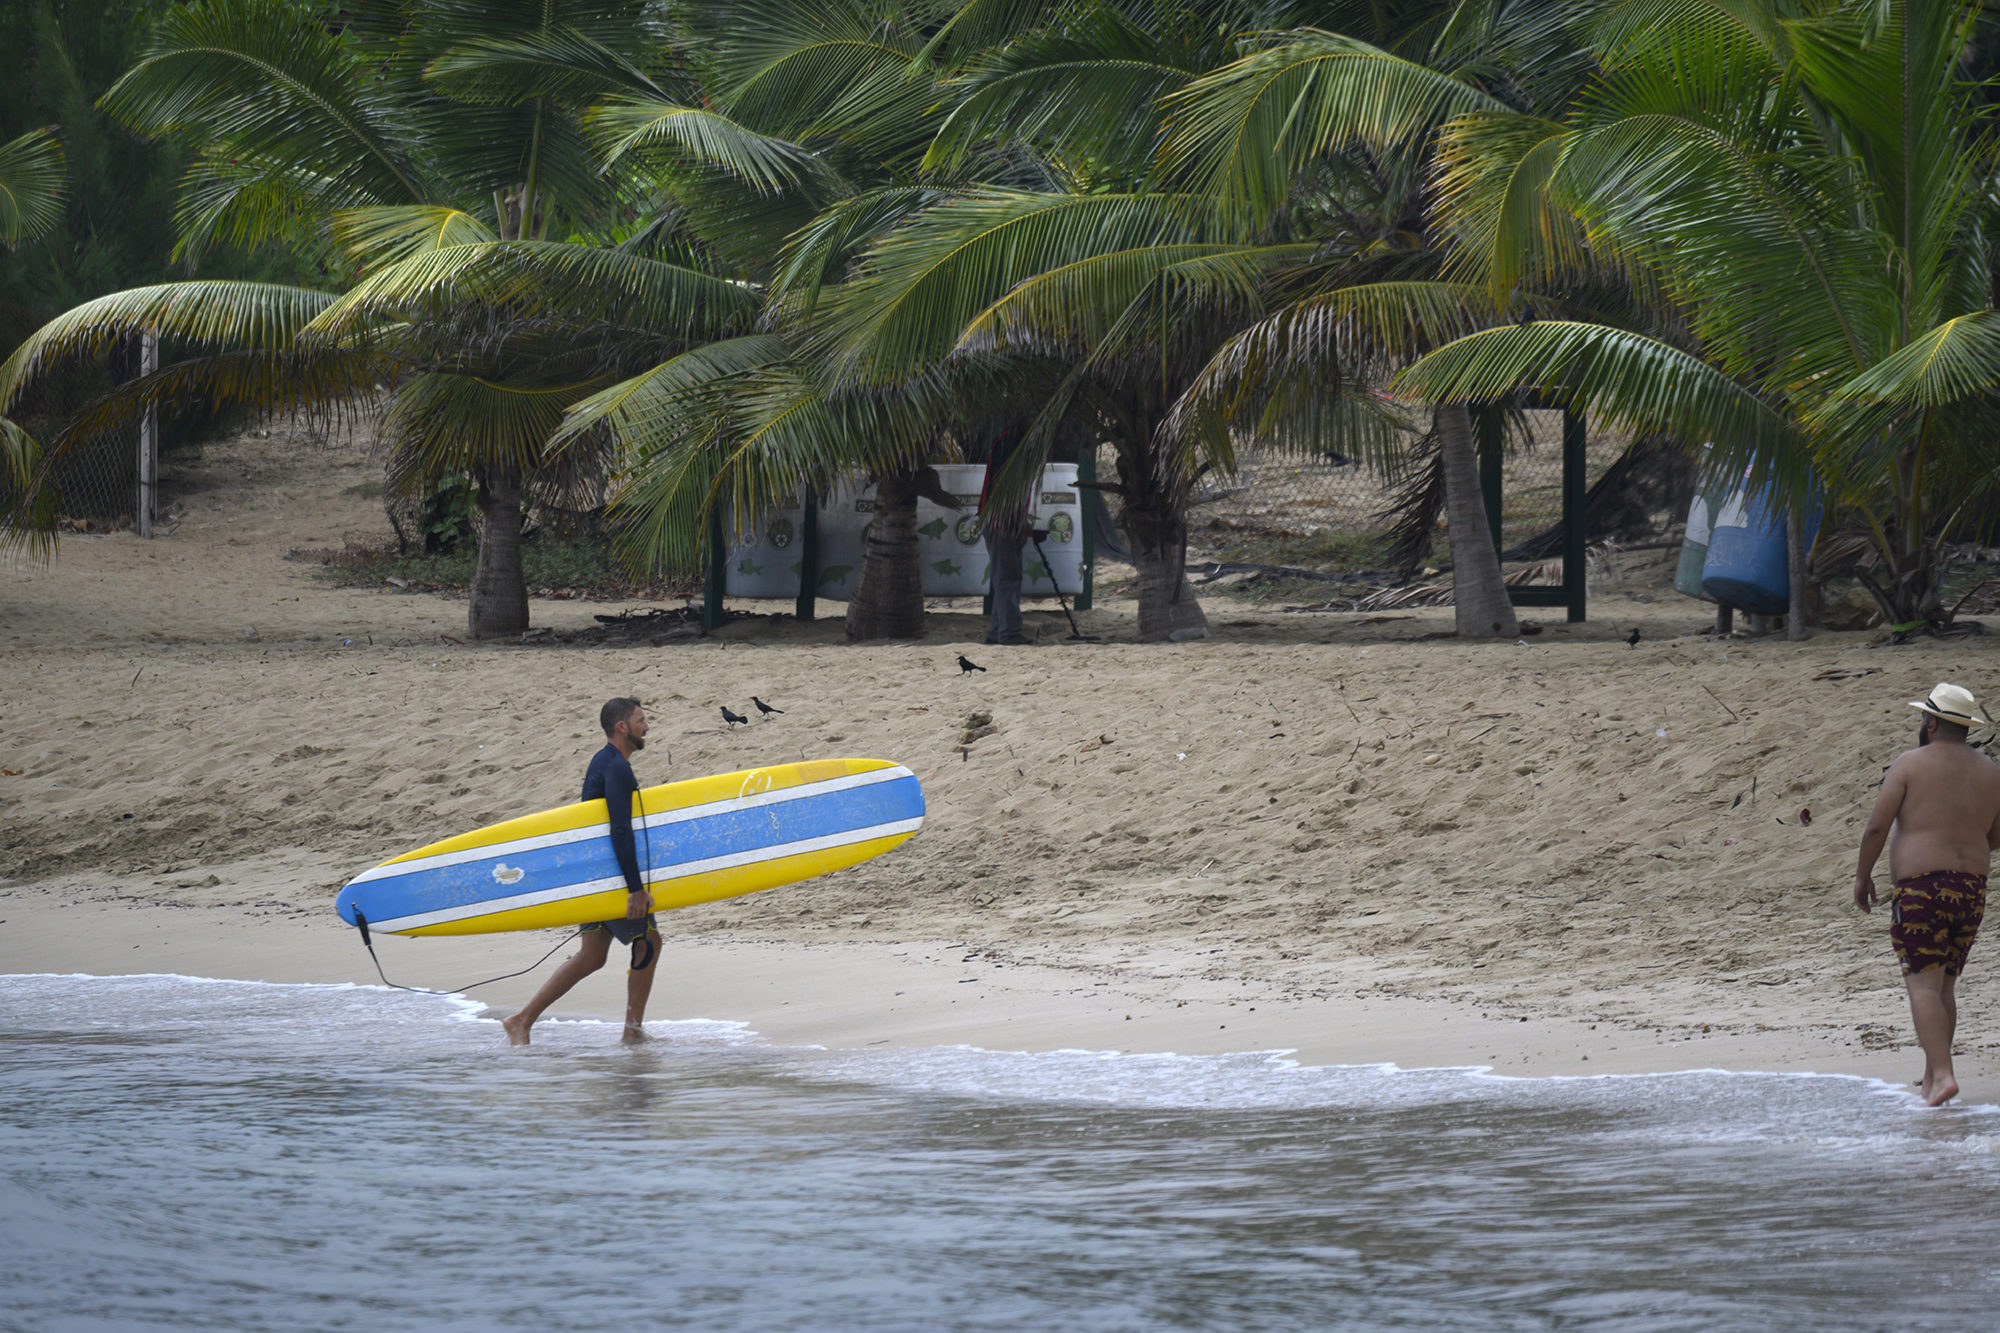 Jan Enderslev, from Montreal, comes ashore after surfing at Jobos Beach. Photo by Erin Johnson